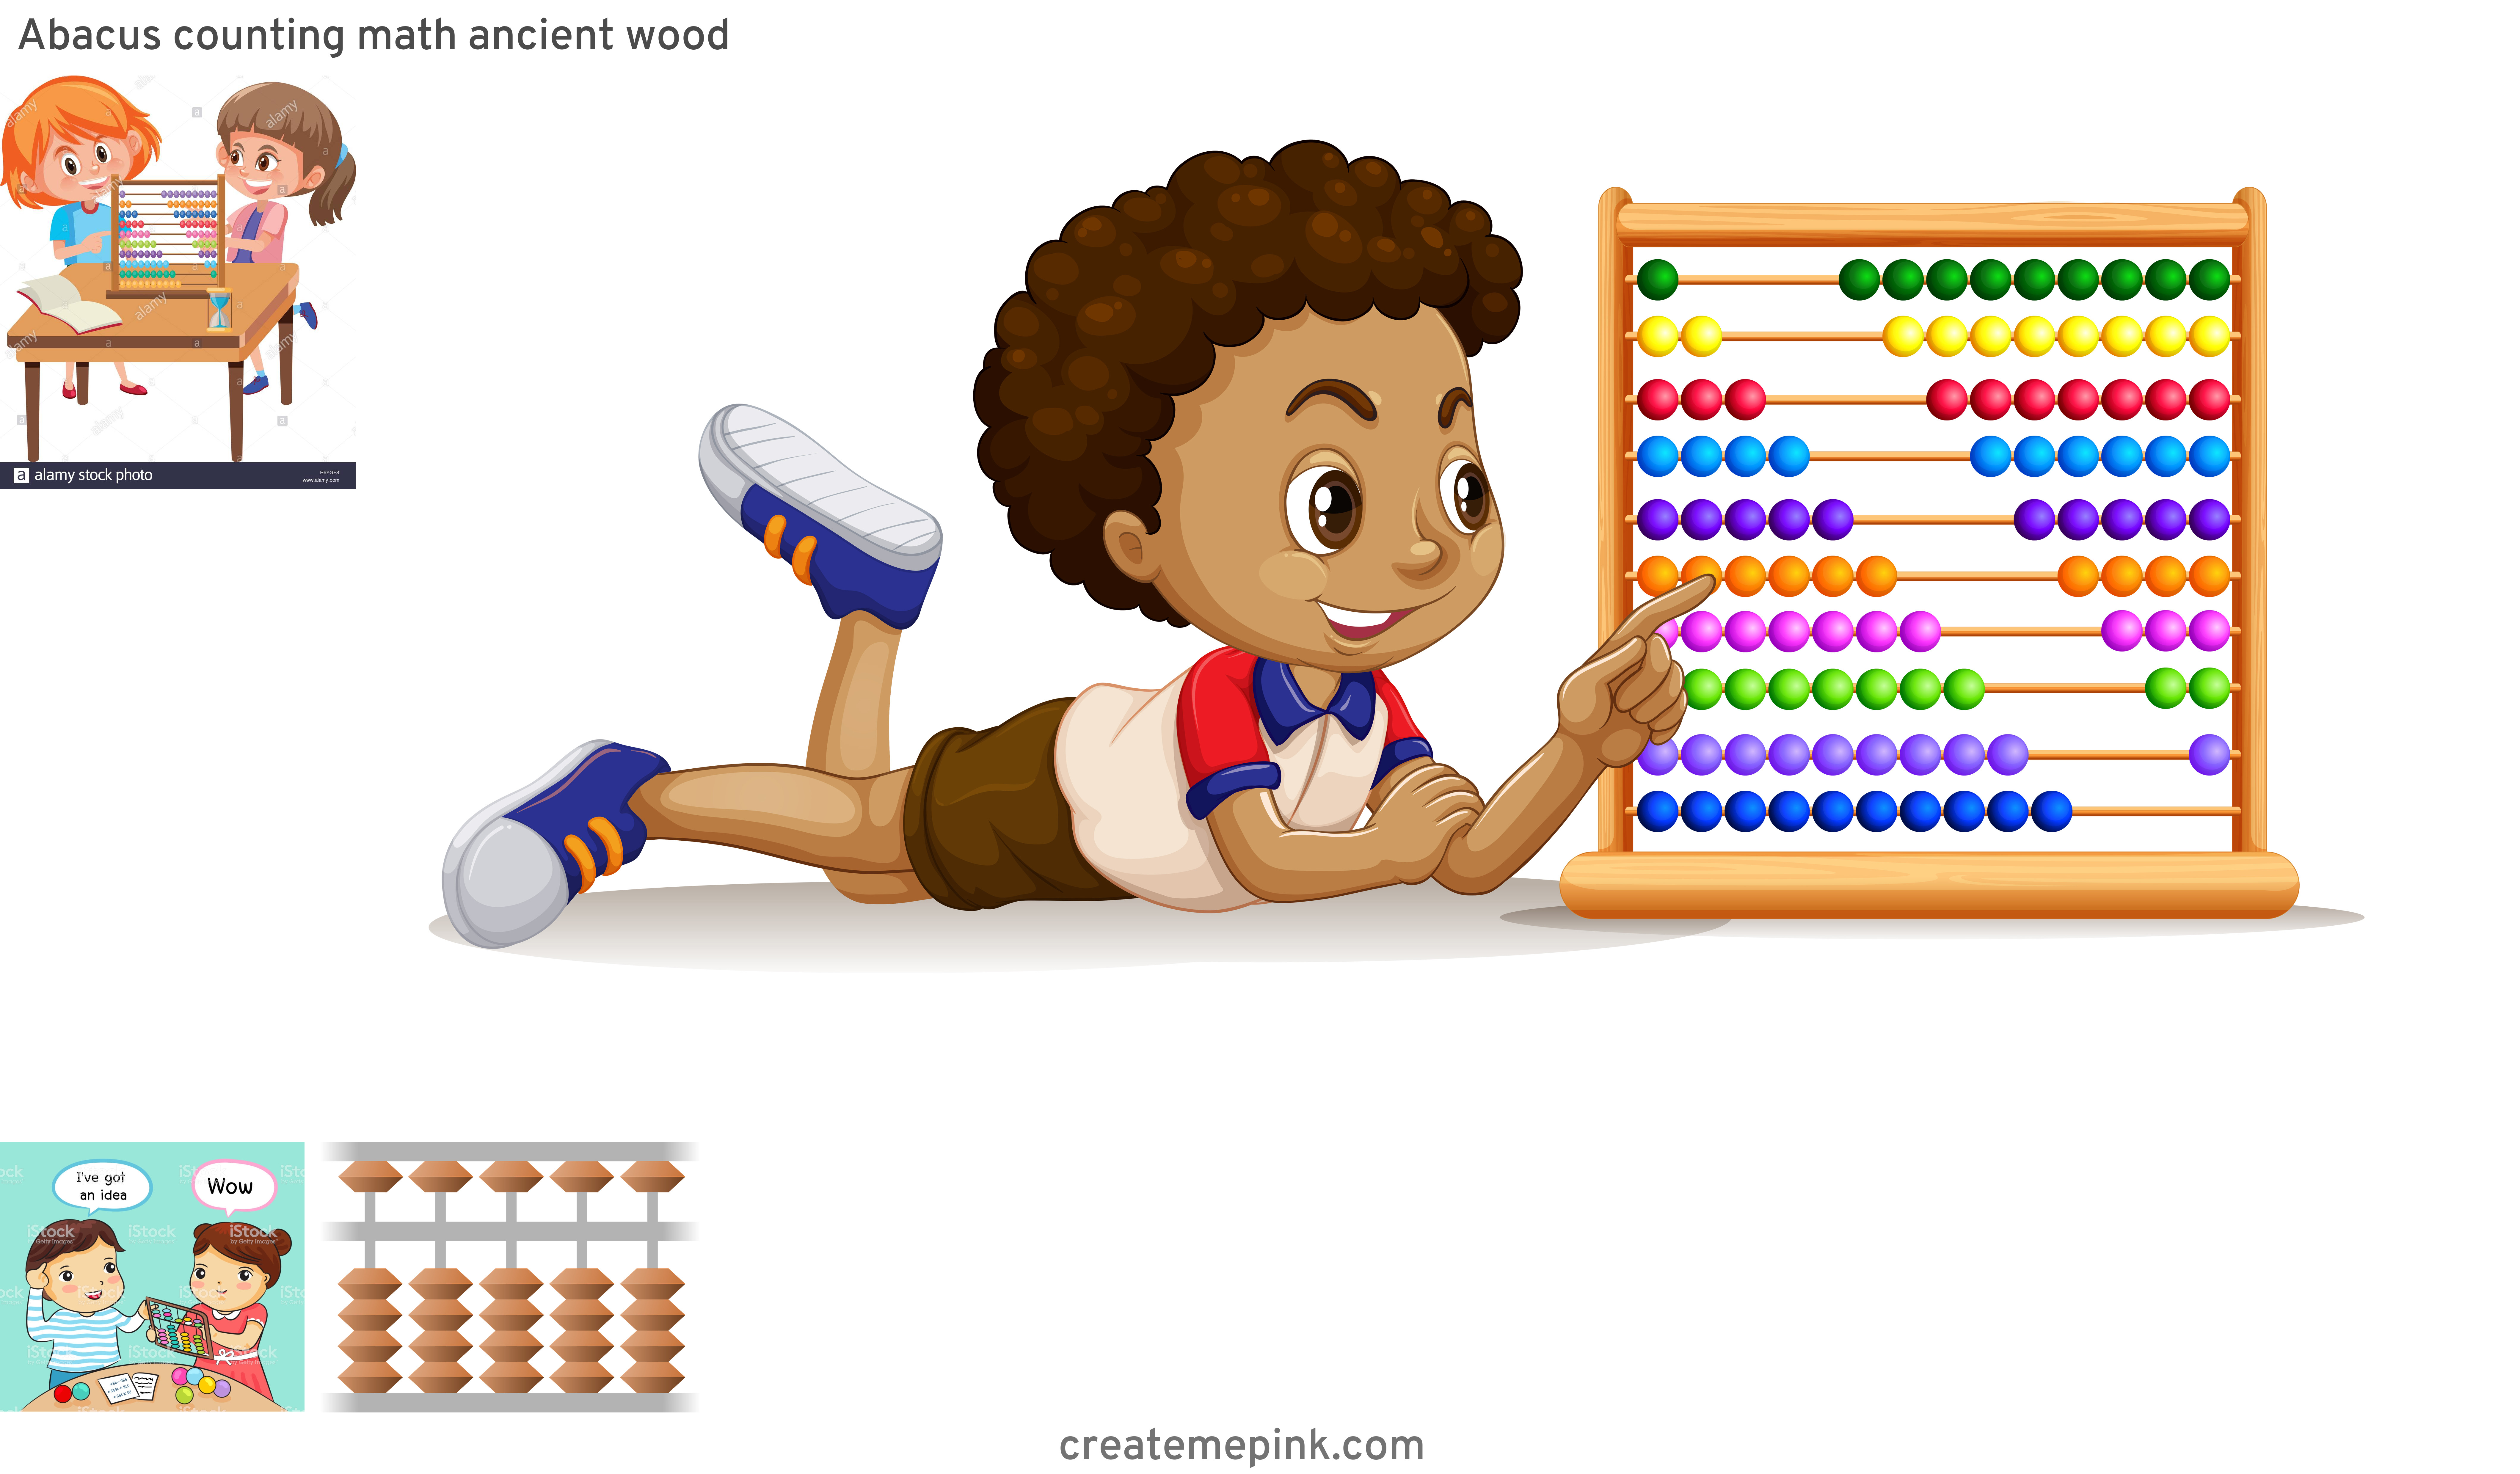 Abacus Vector Art: Abacus Counting Math Ancient Wood